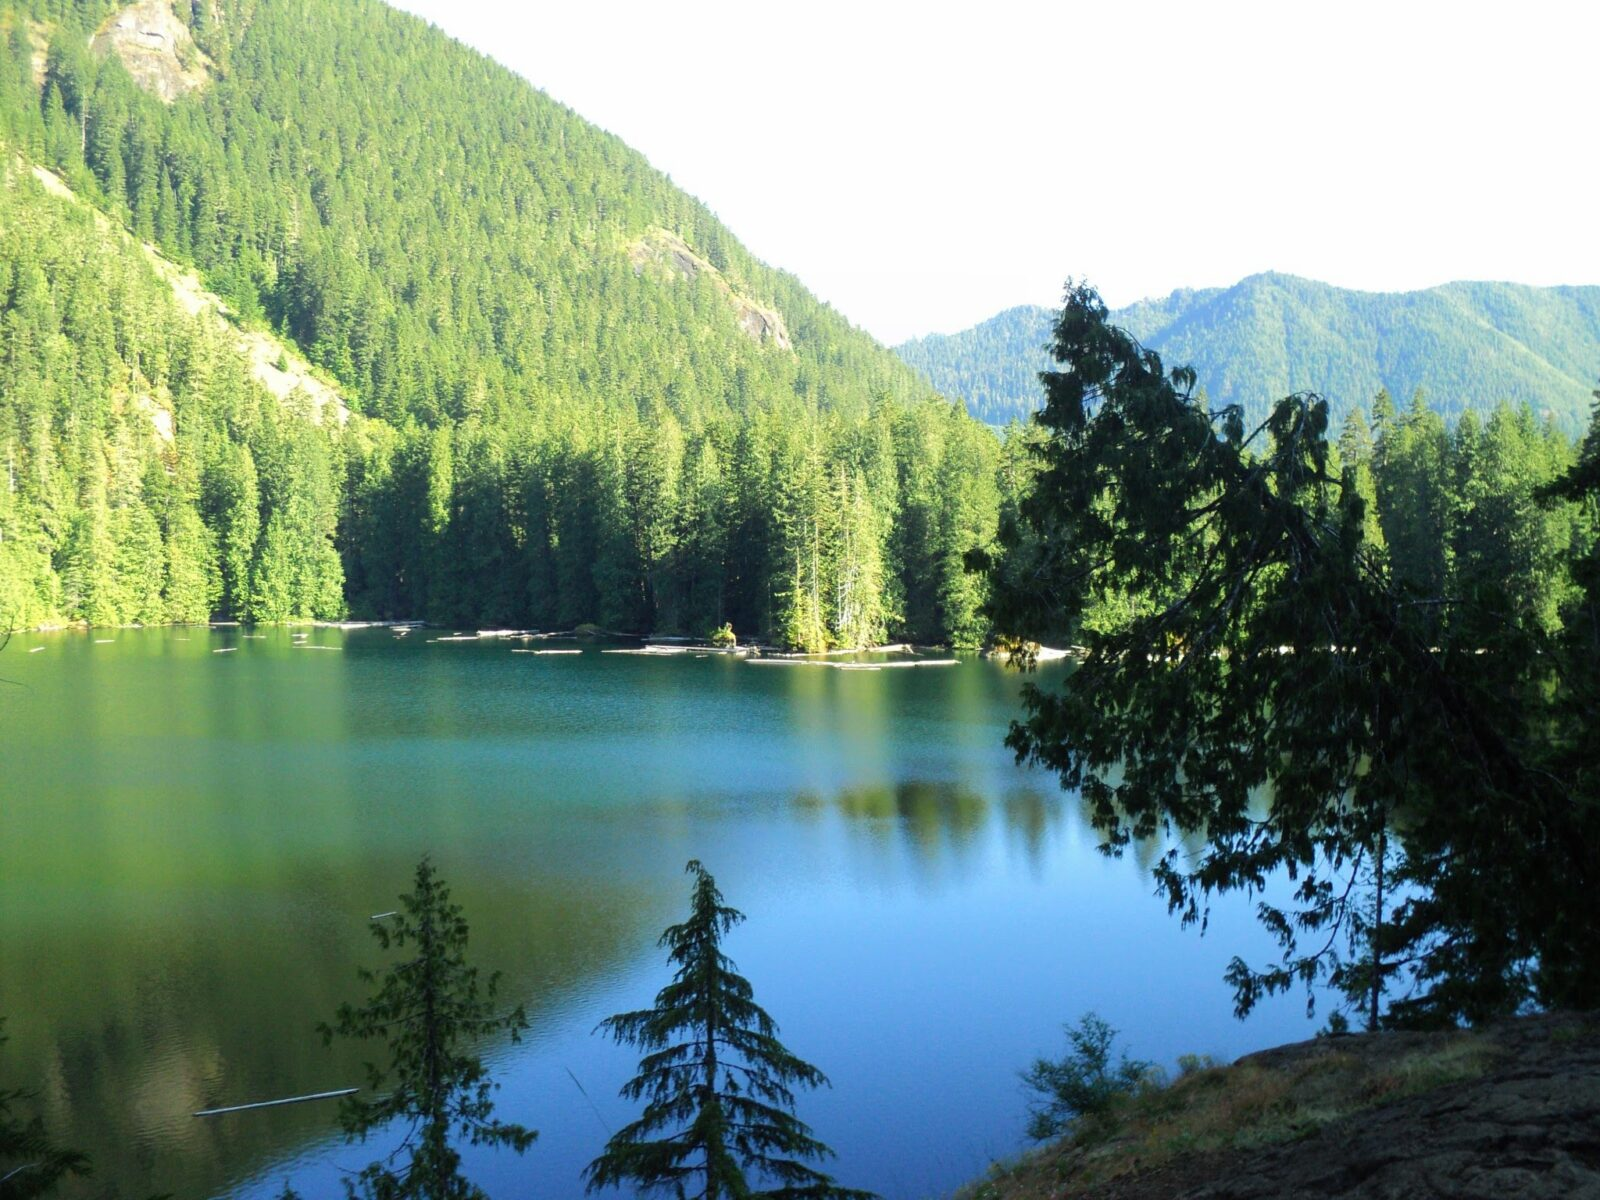 A calm alpine lake on a sunny day surrounded by evergreen trees.